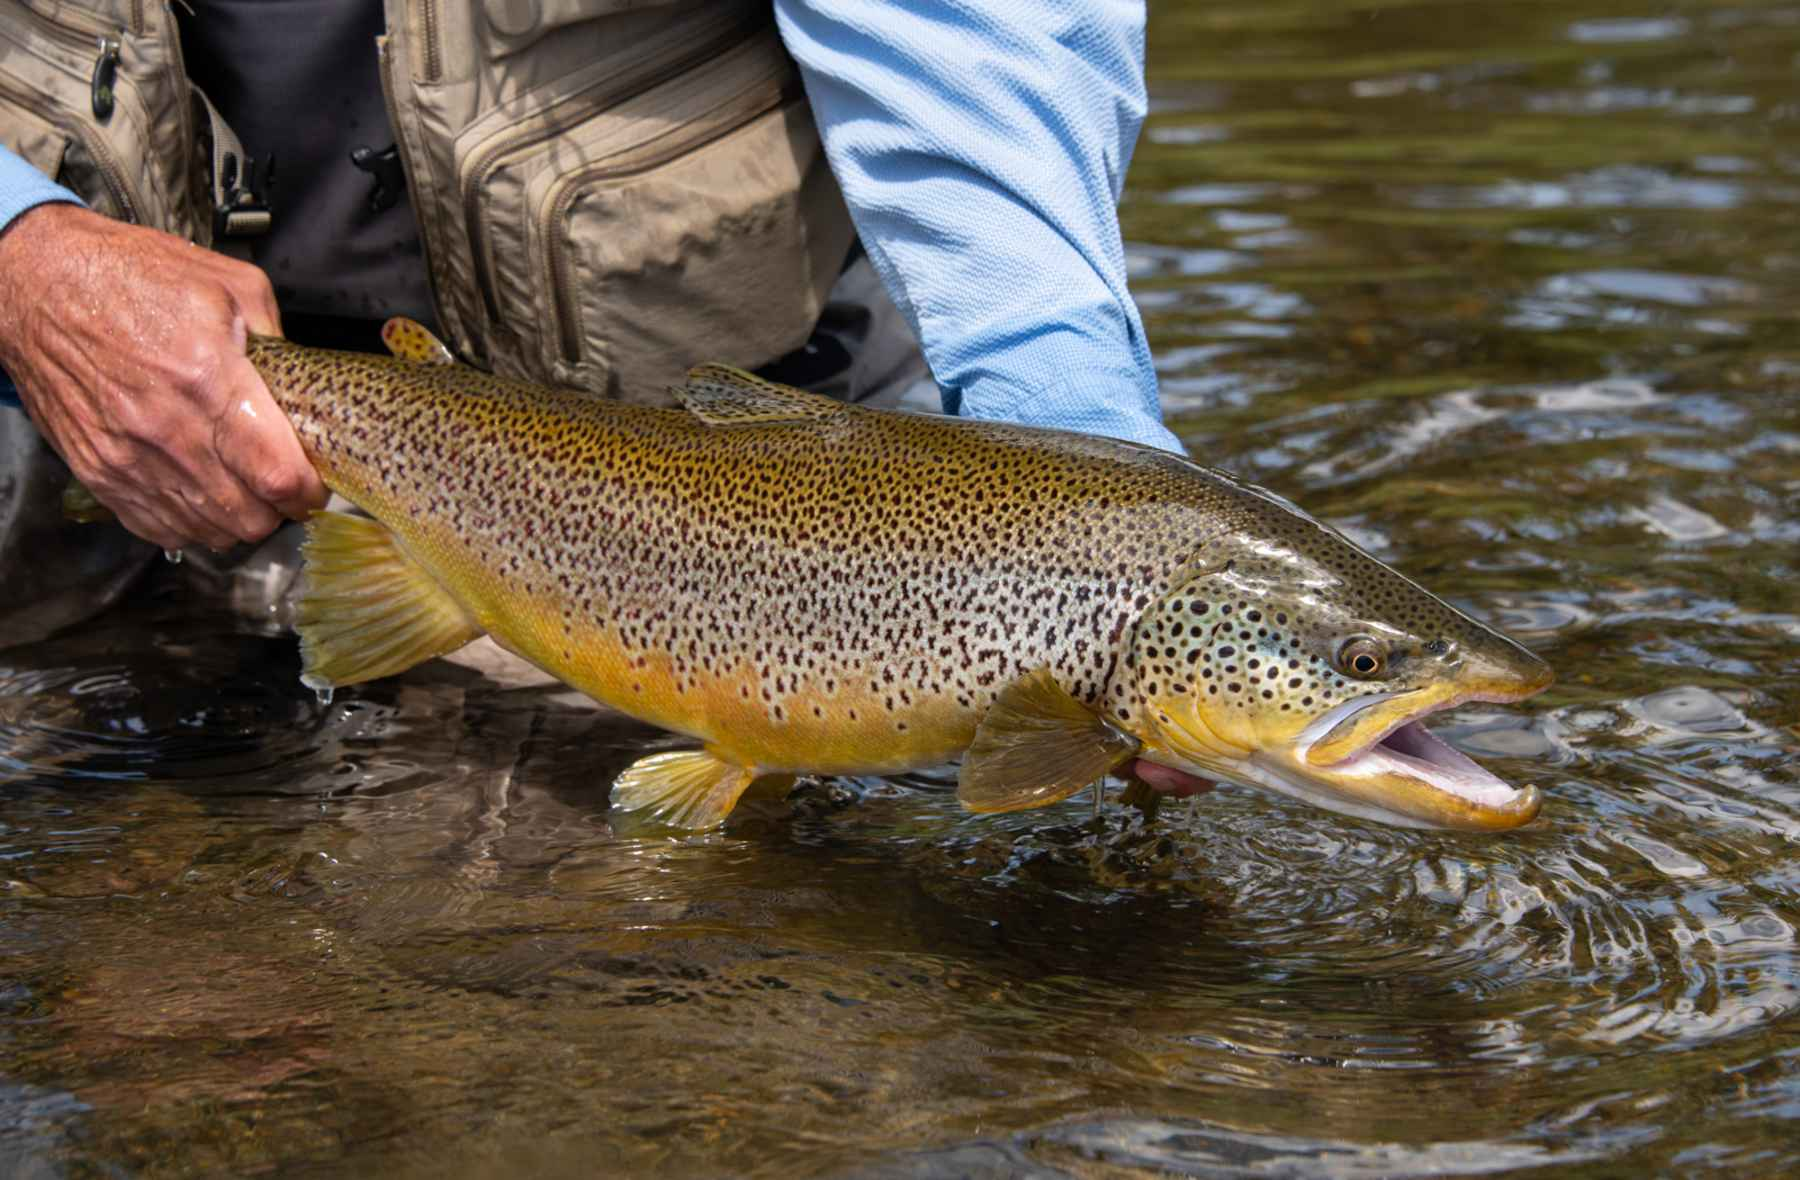 A brown trout quirk | Hatch Magazine - Fly Fishing, etc.